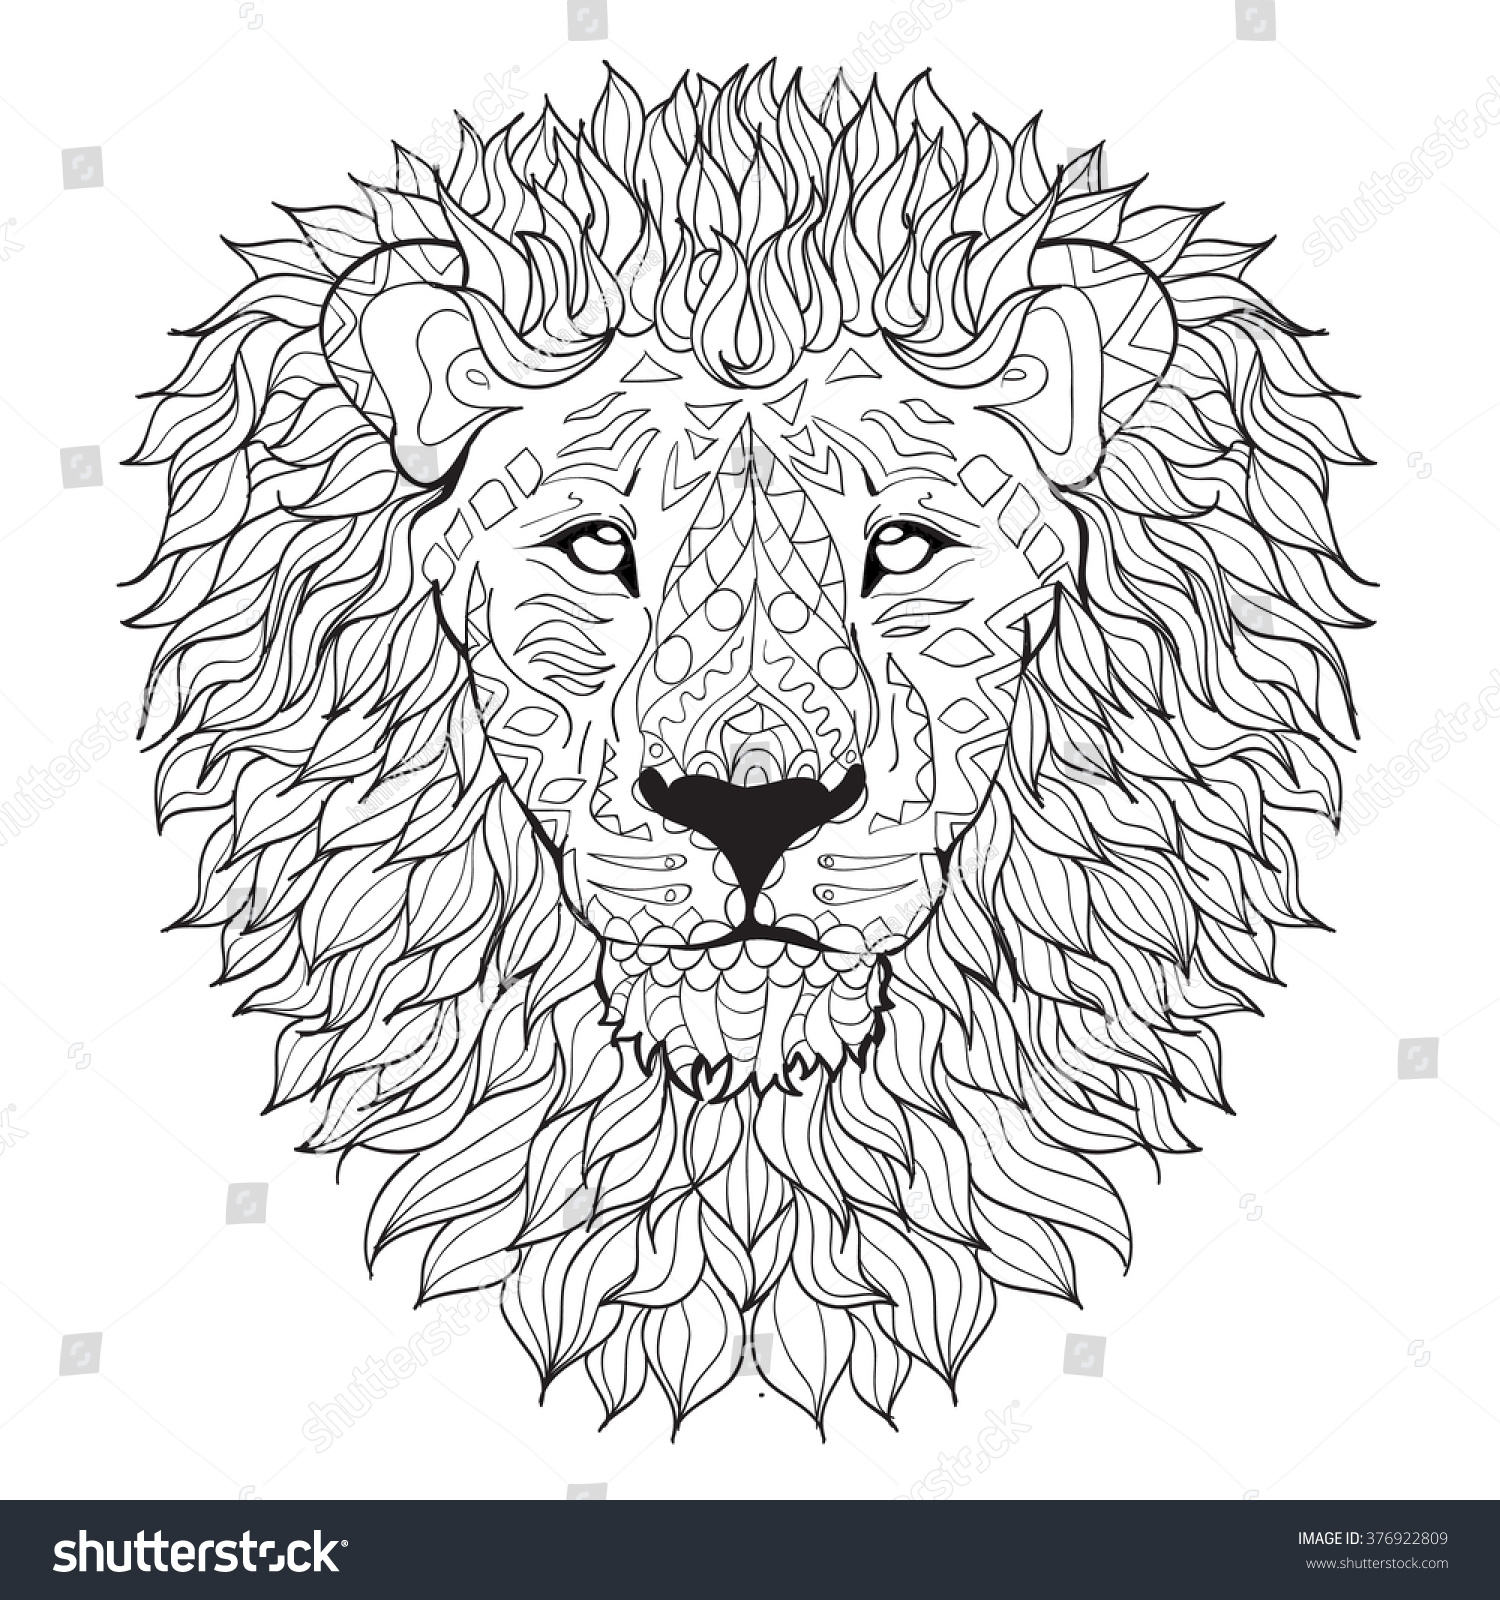 Coloring Pages Lion Head Coloring Page lion head coloring page eassume com hand drawn isolated on stock vector 376922809 shutterstock